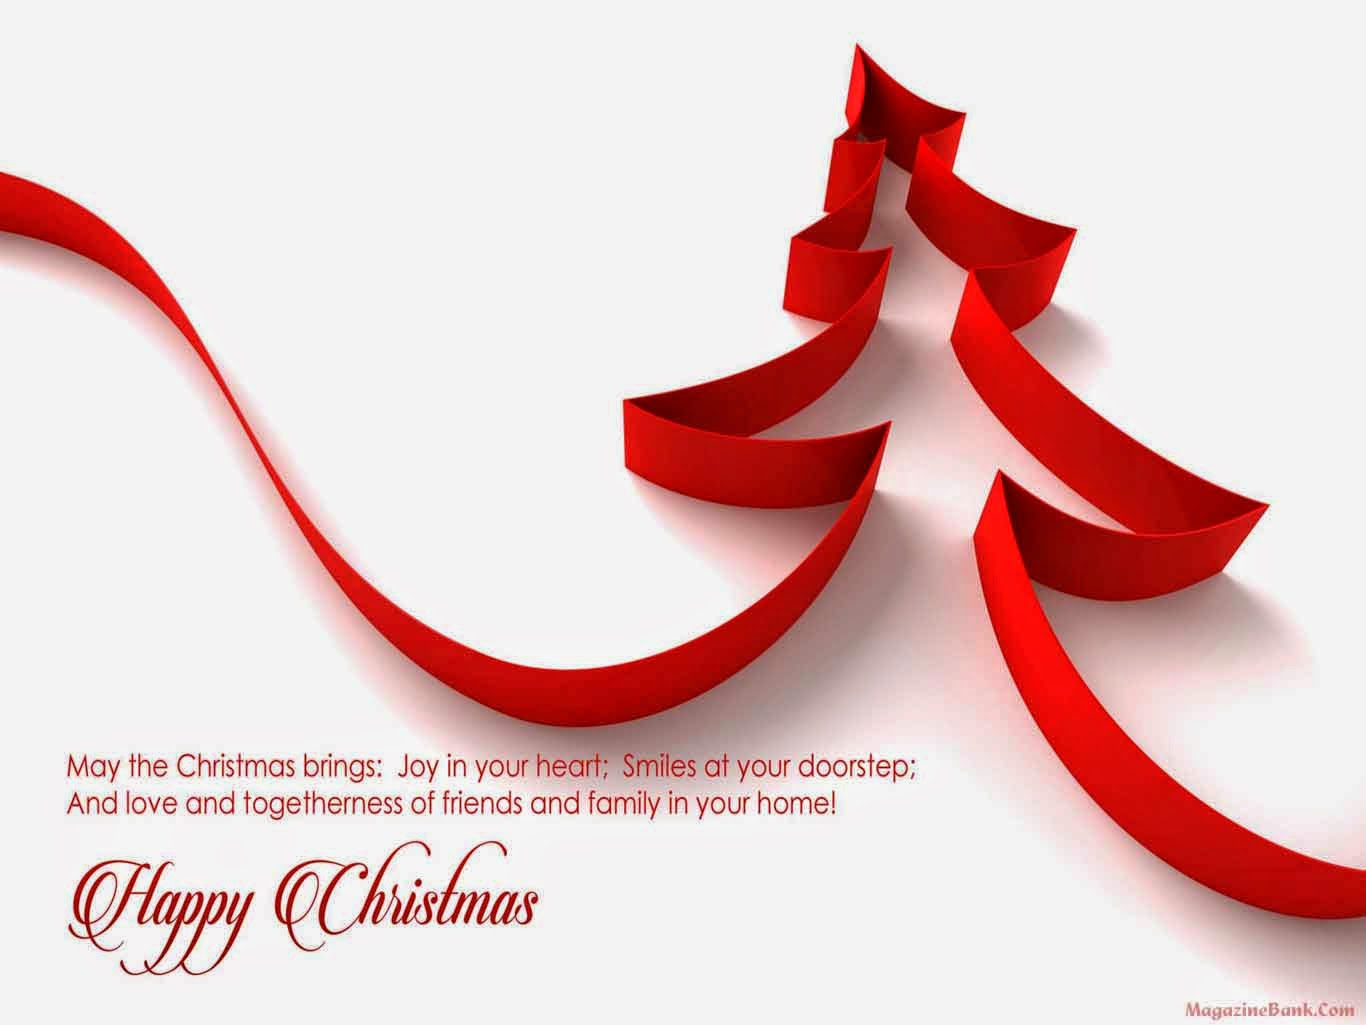 Merry-Christmas-&-Happy-New-Year Wishes-Wallpapers